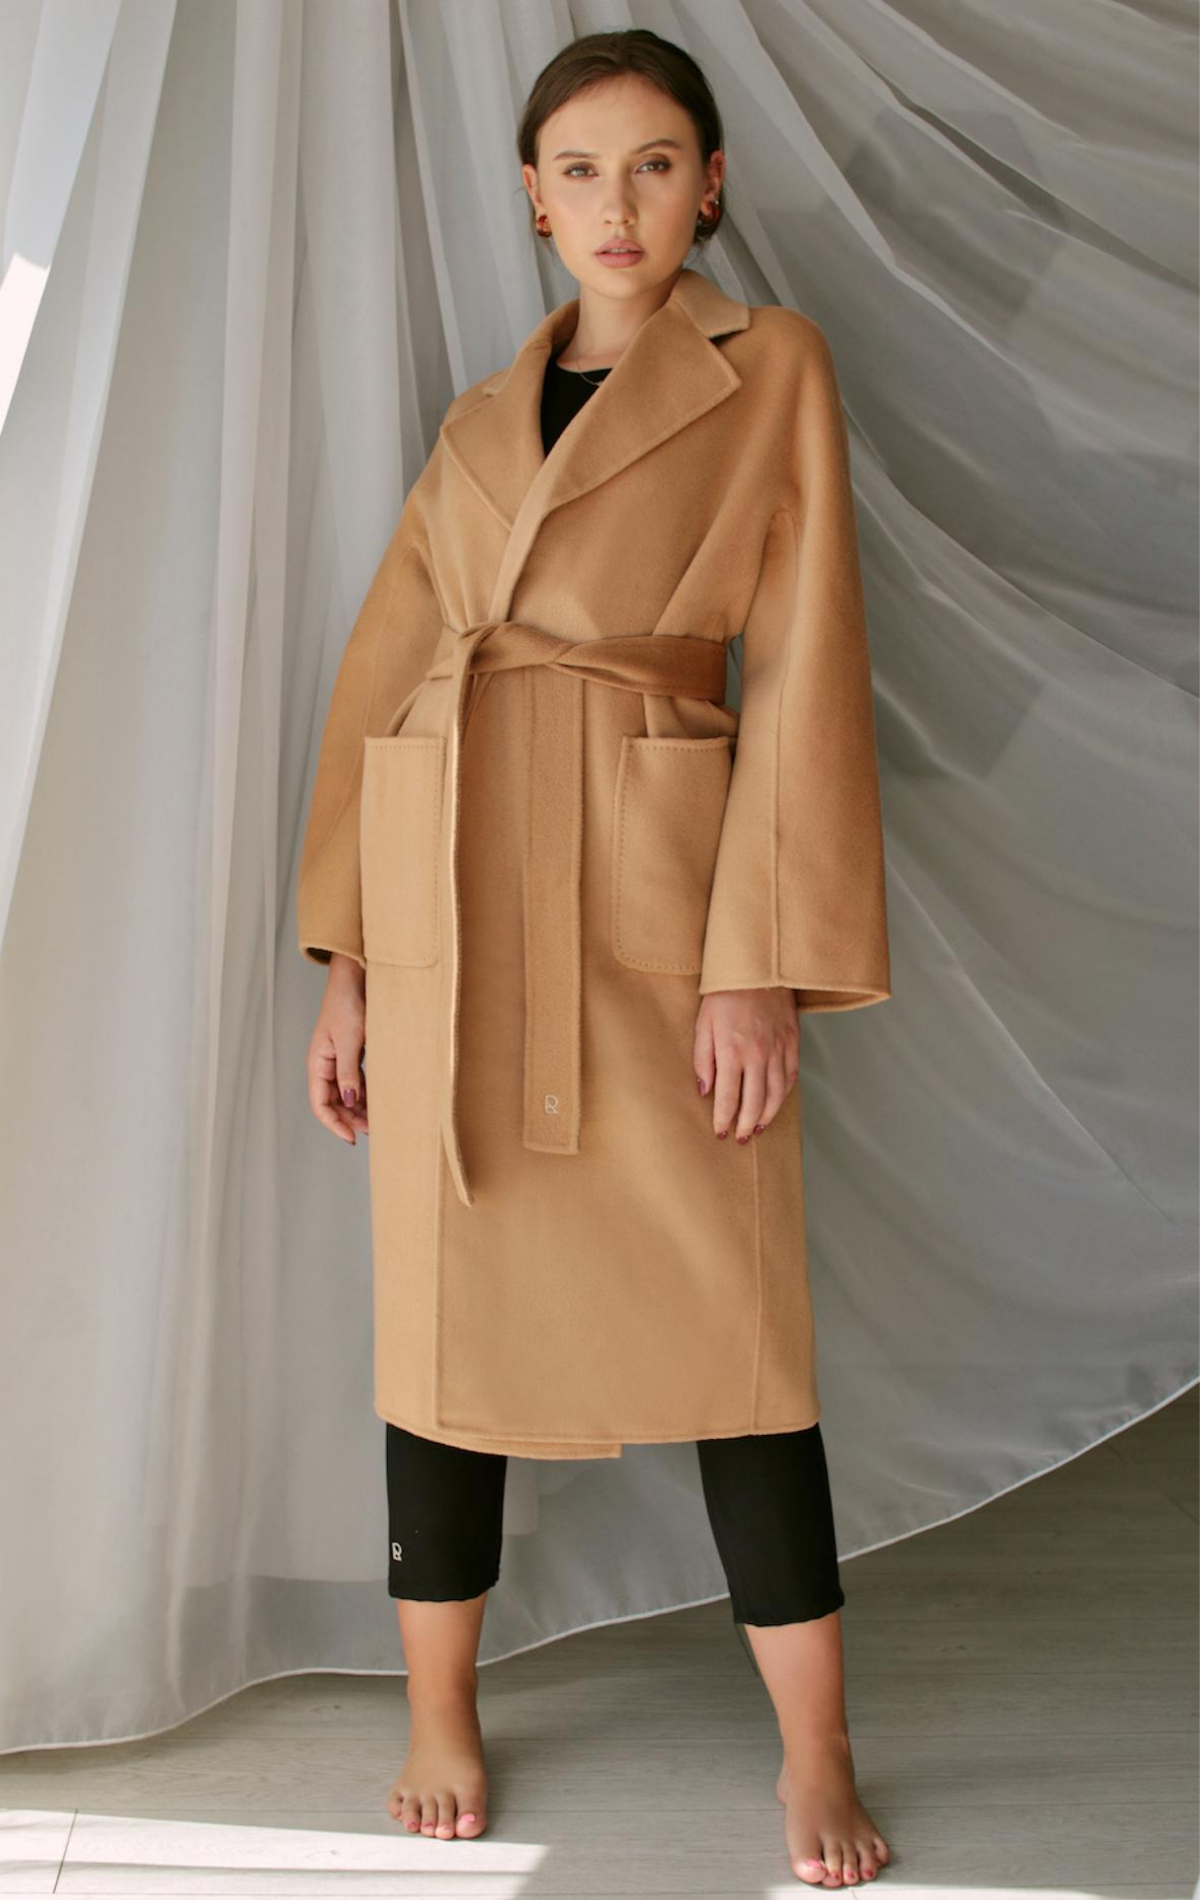 Model wearing the below knee-length coat with large pockets and tie waist in beige